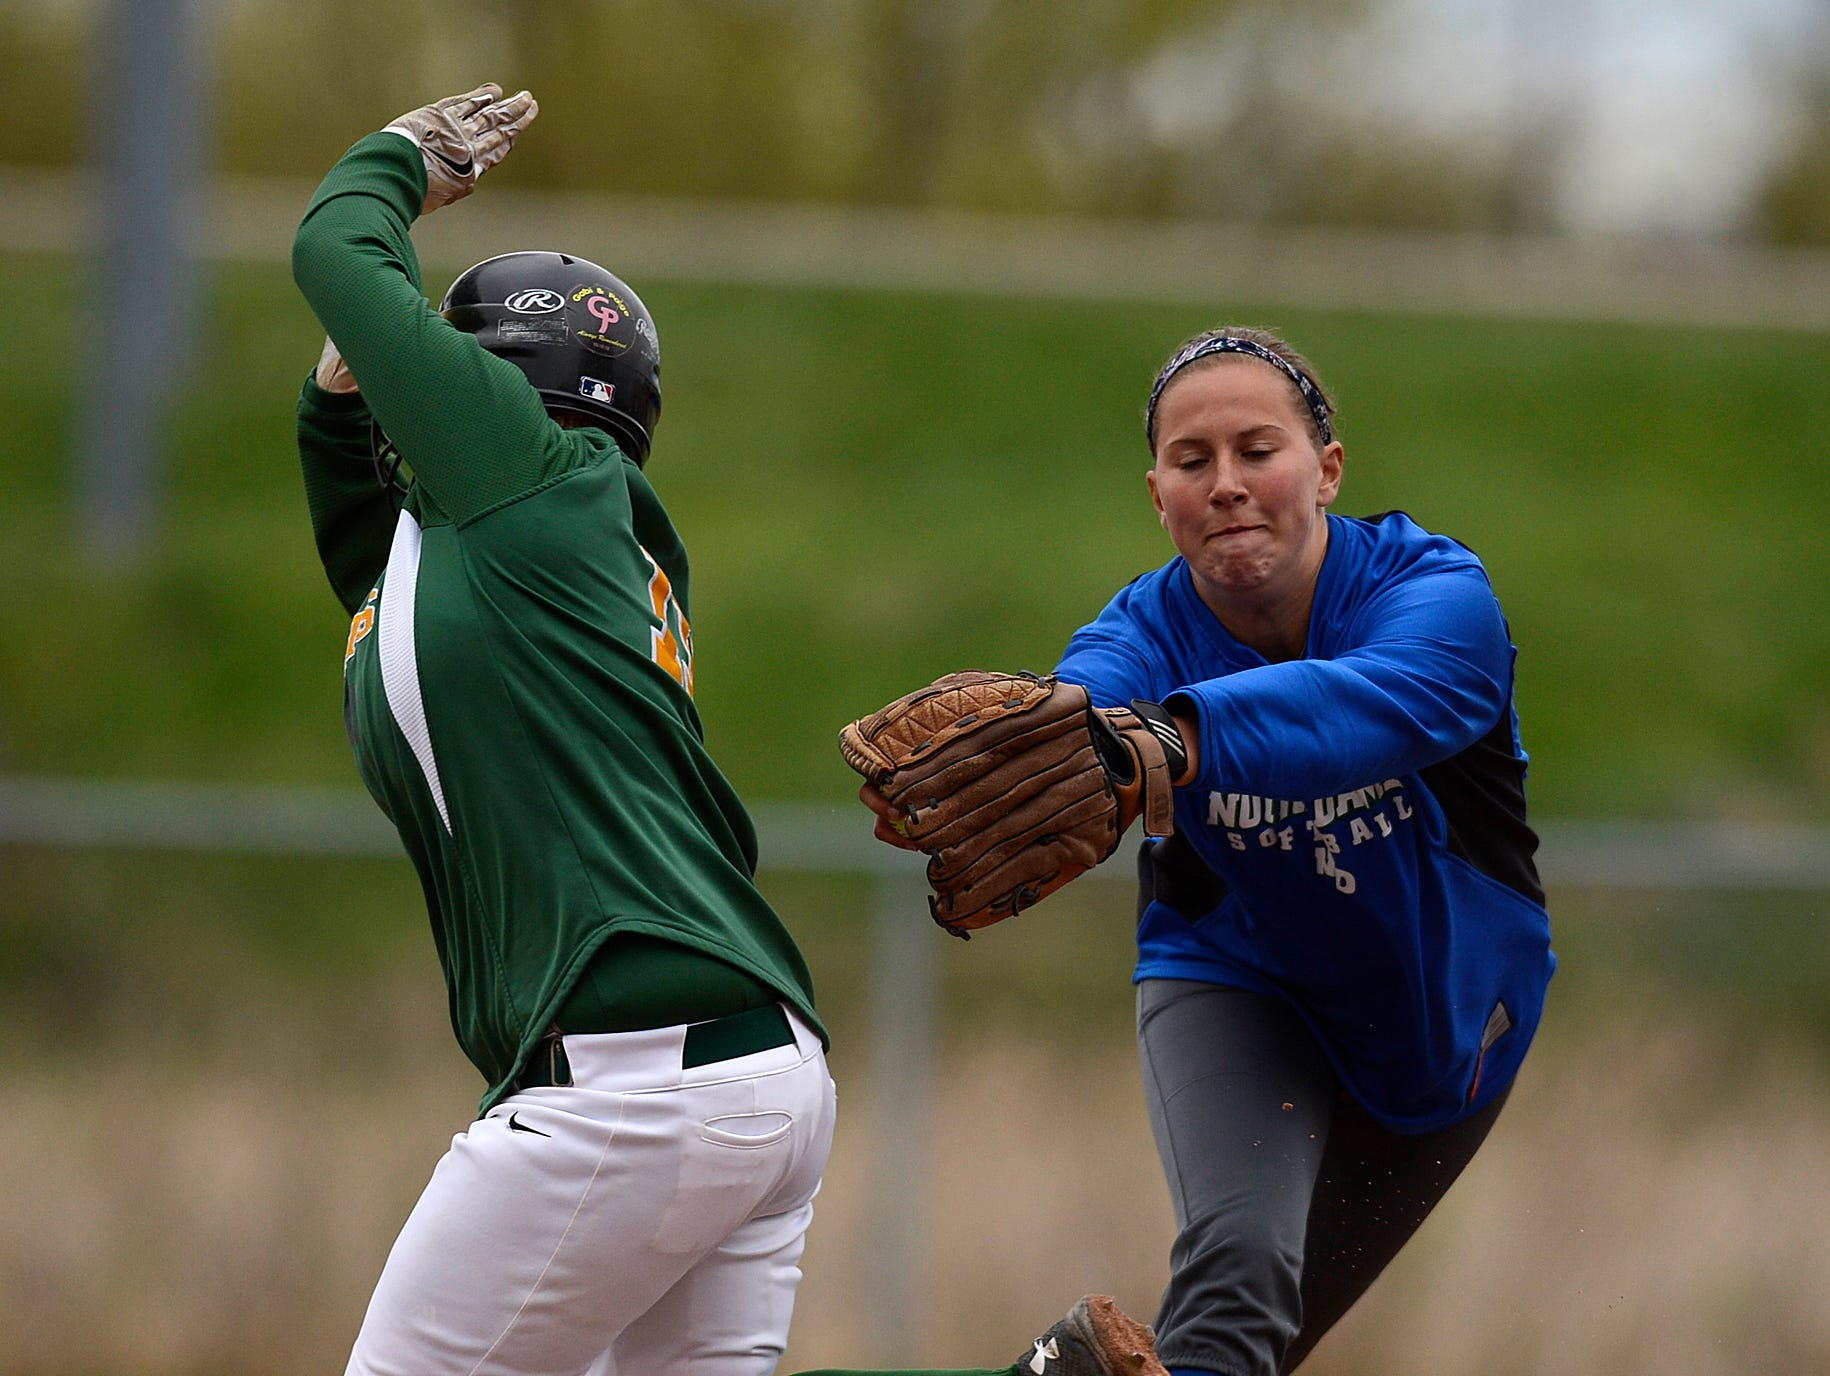 Green Bay Notre Dame second baseman Kendra Noble (9) tags out Green Bay Preble's Megan Timmers (15) during Tuesday's softball game at Riverview Park in Allouez.